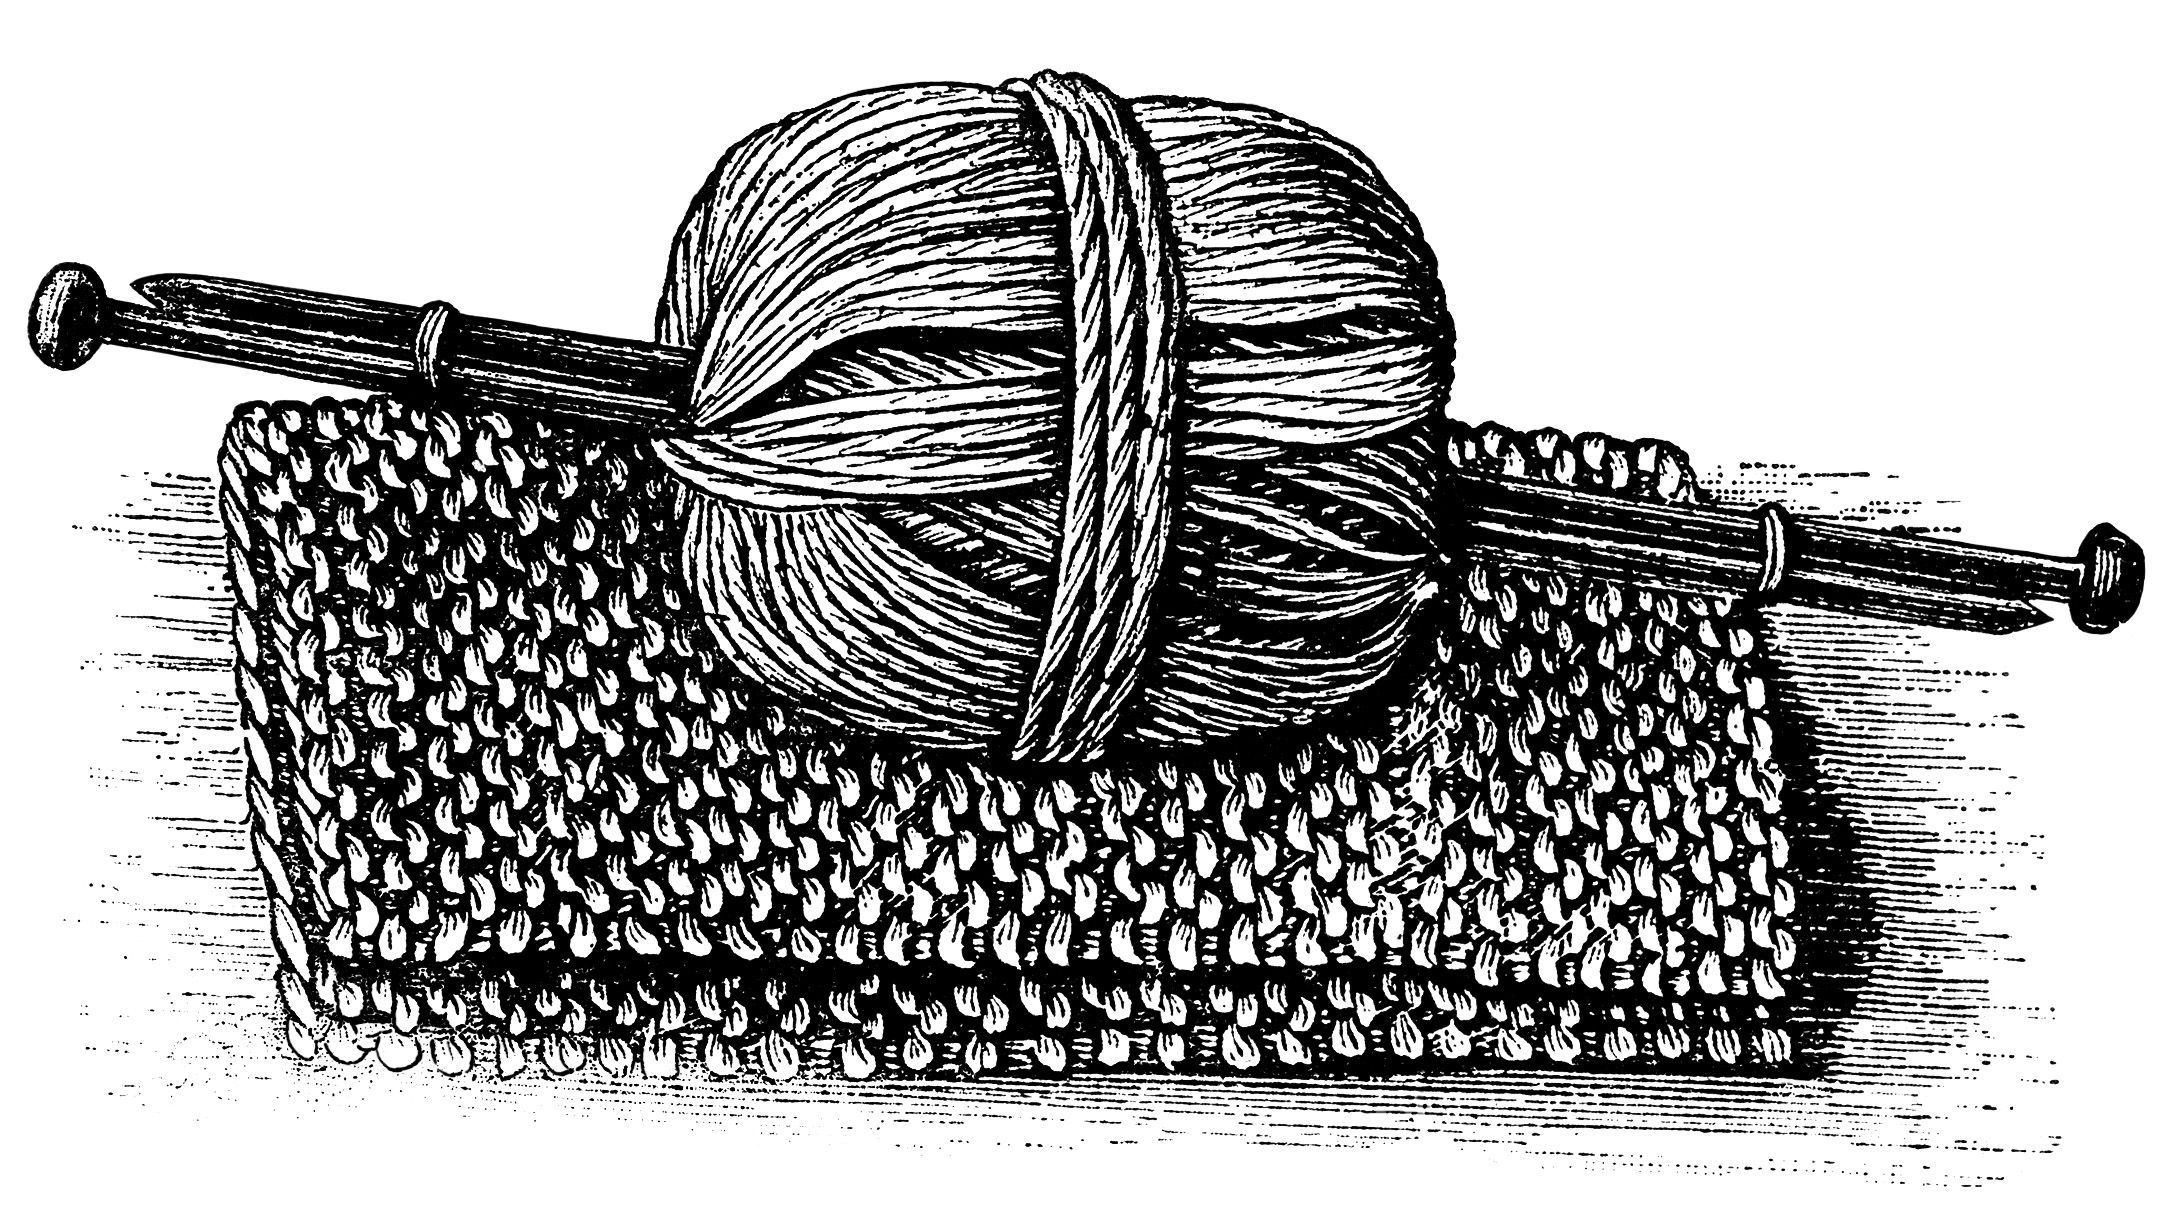 Knitting Needles And Yarn Clipart : Black and white graphics vintage knitting clipart ball